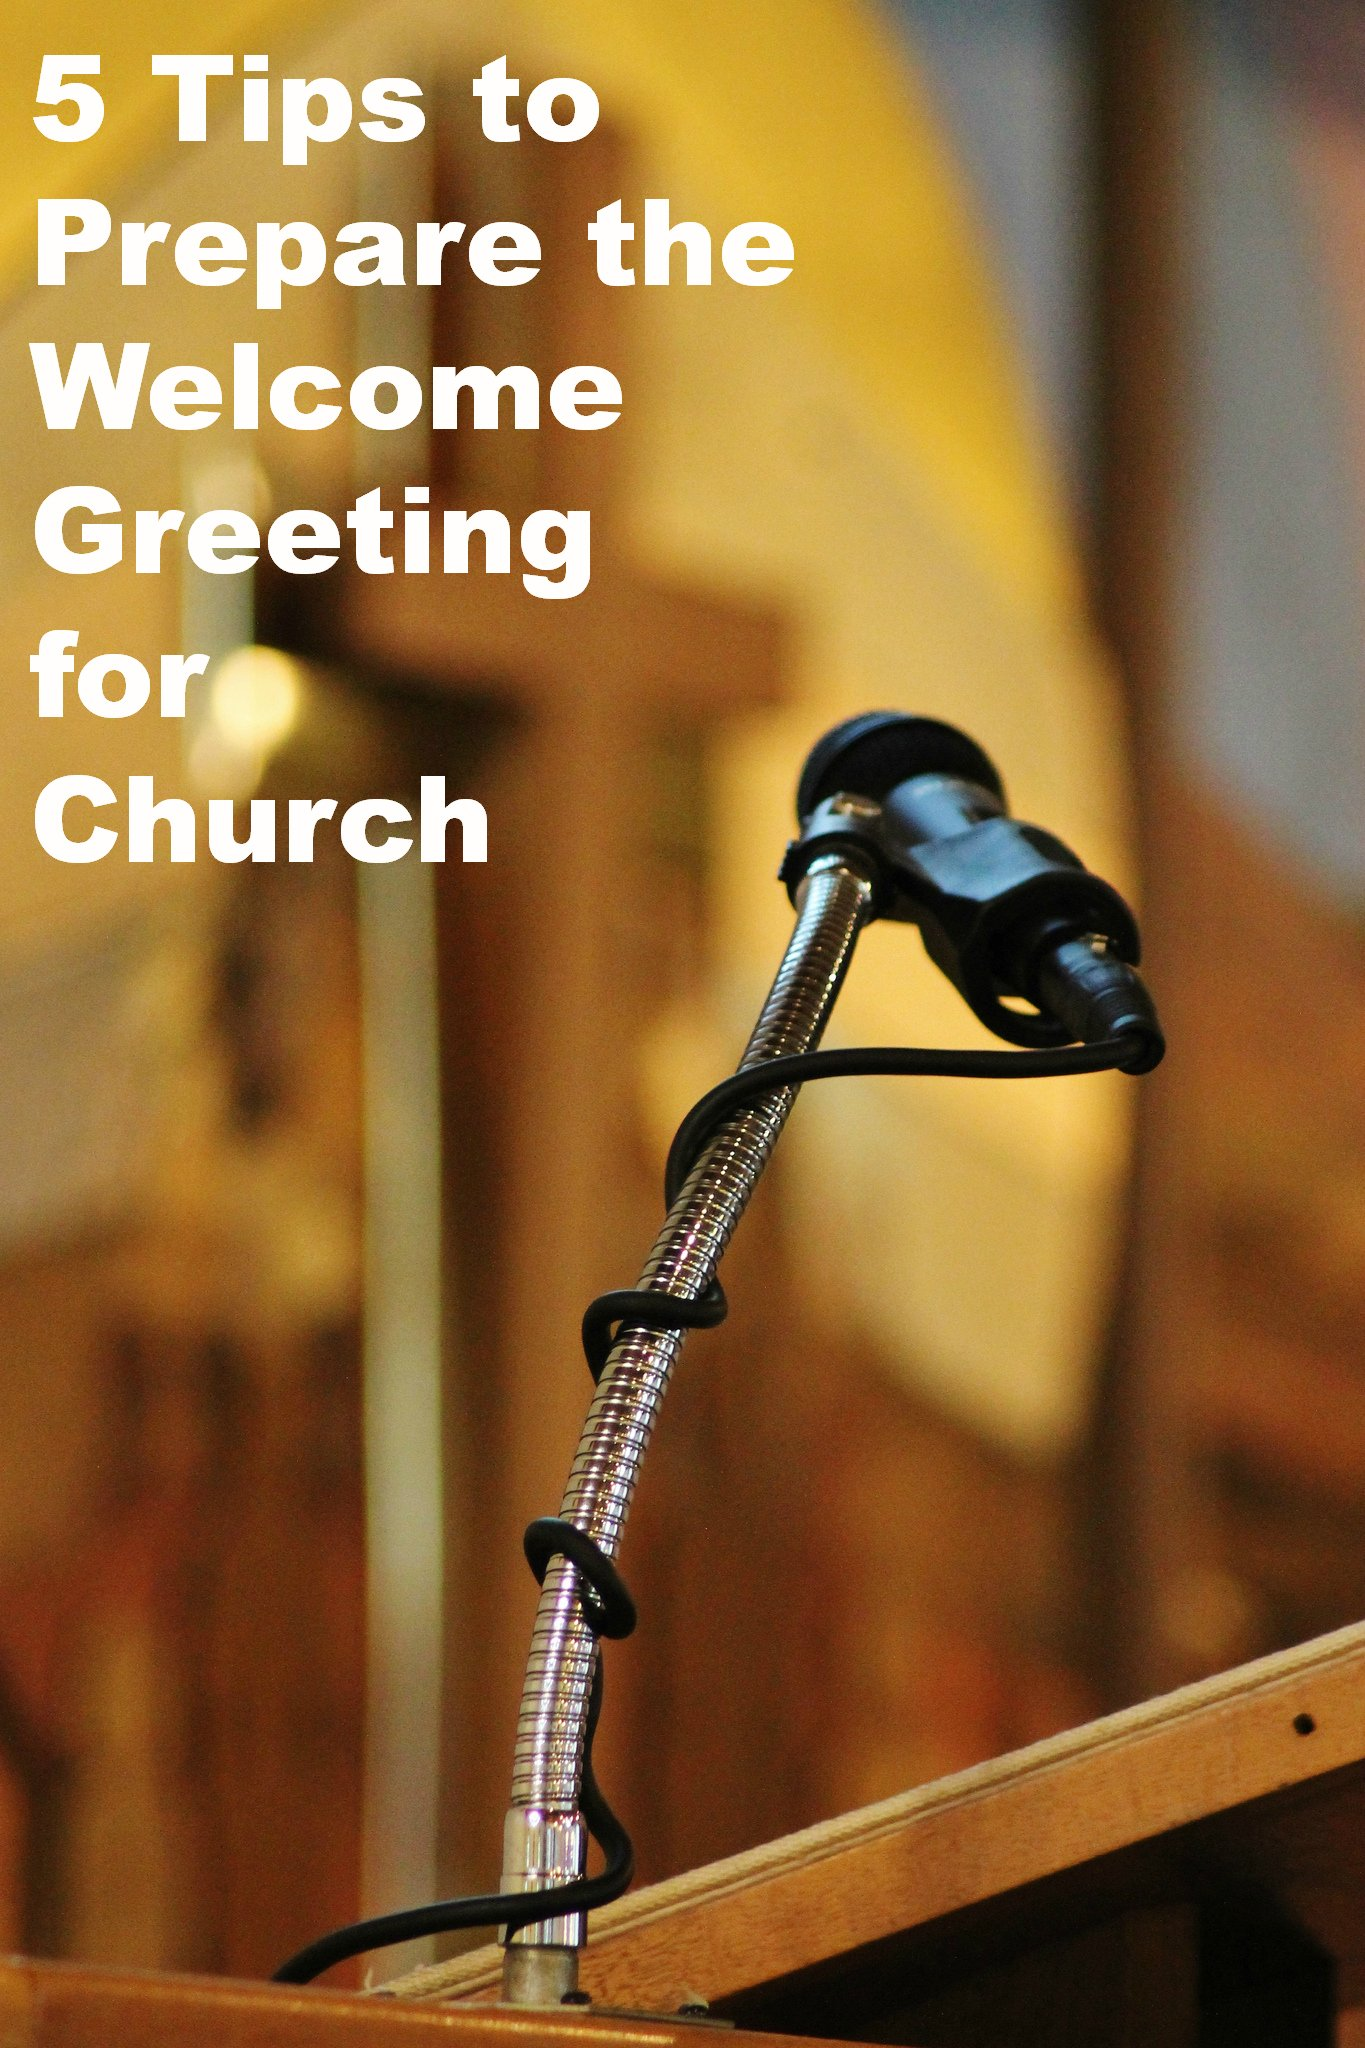 5 tips to prepare the welcome speech at church kristyandbryce Image collections